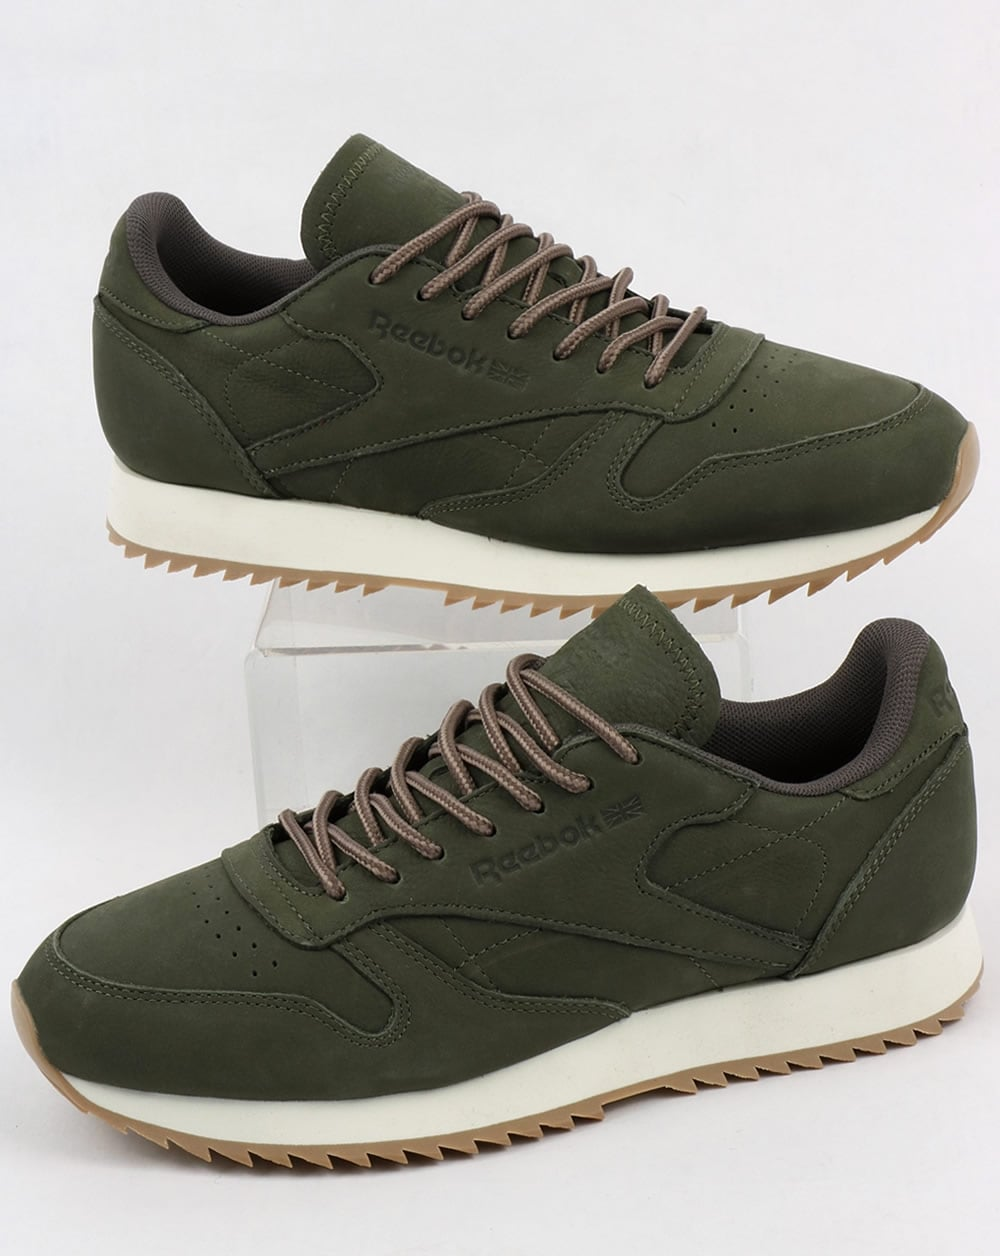 Reebok Classic Leather Ripple Trainers